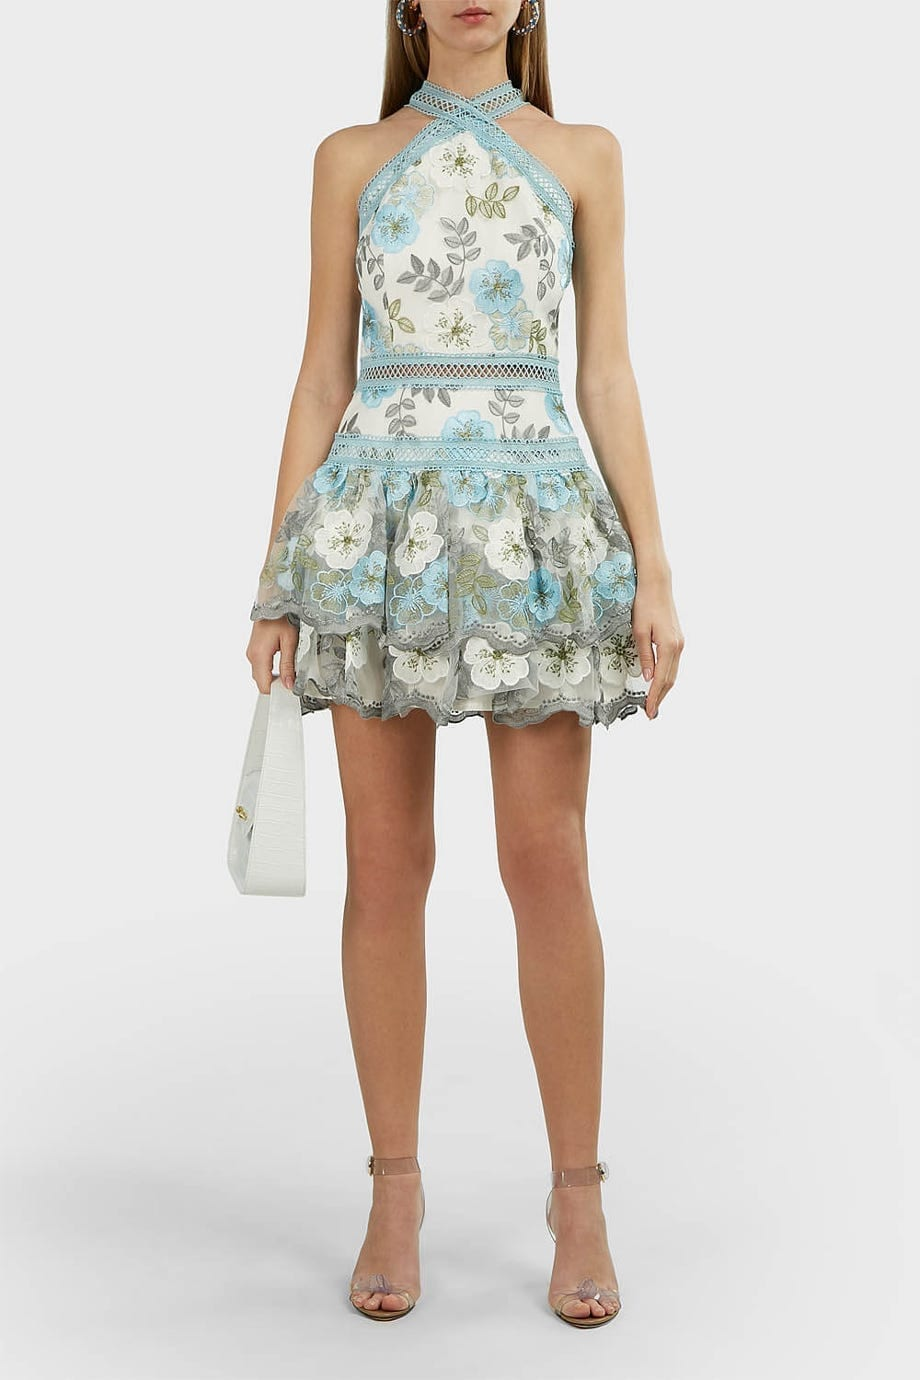 BRONX AND BANCO Penelope Floral Mini Dress